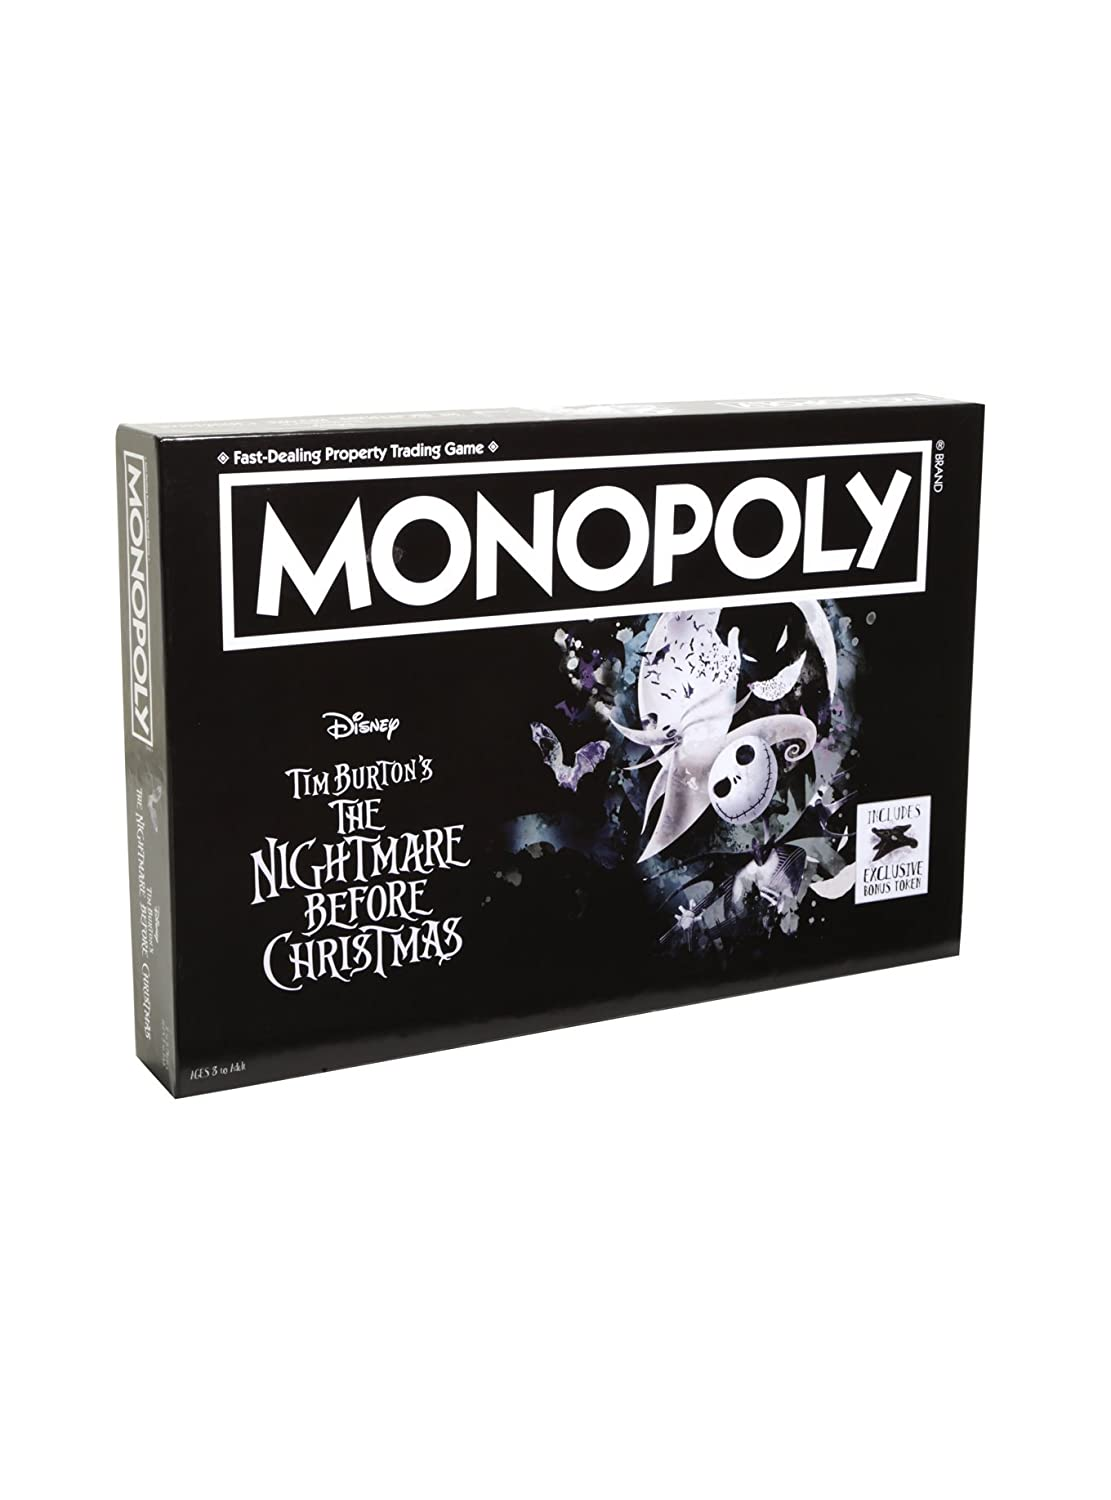 【メーカー公式ショップ】 NEW B0763TMTFH Monopoly Collector's The Nightmare Before Christmas Collector's Edition Edition Board Game B0763TMTFH, atmack*家具 雑貨 事務用品:bd411063 --- fbrasil.com